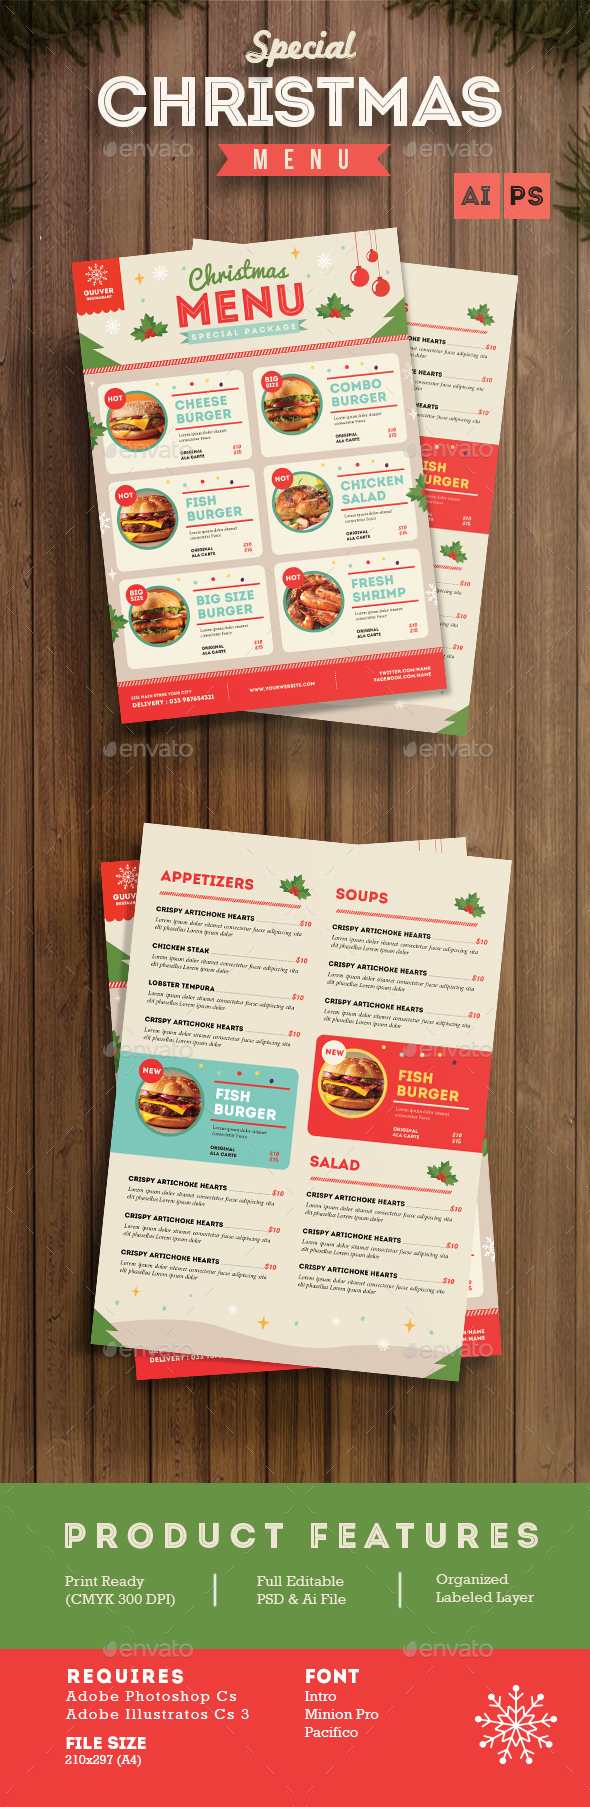 Special Christmas Menu Pinterest Menu Menu Templates And Food